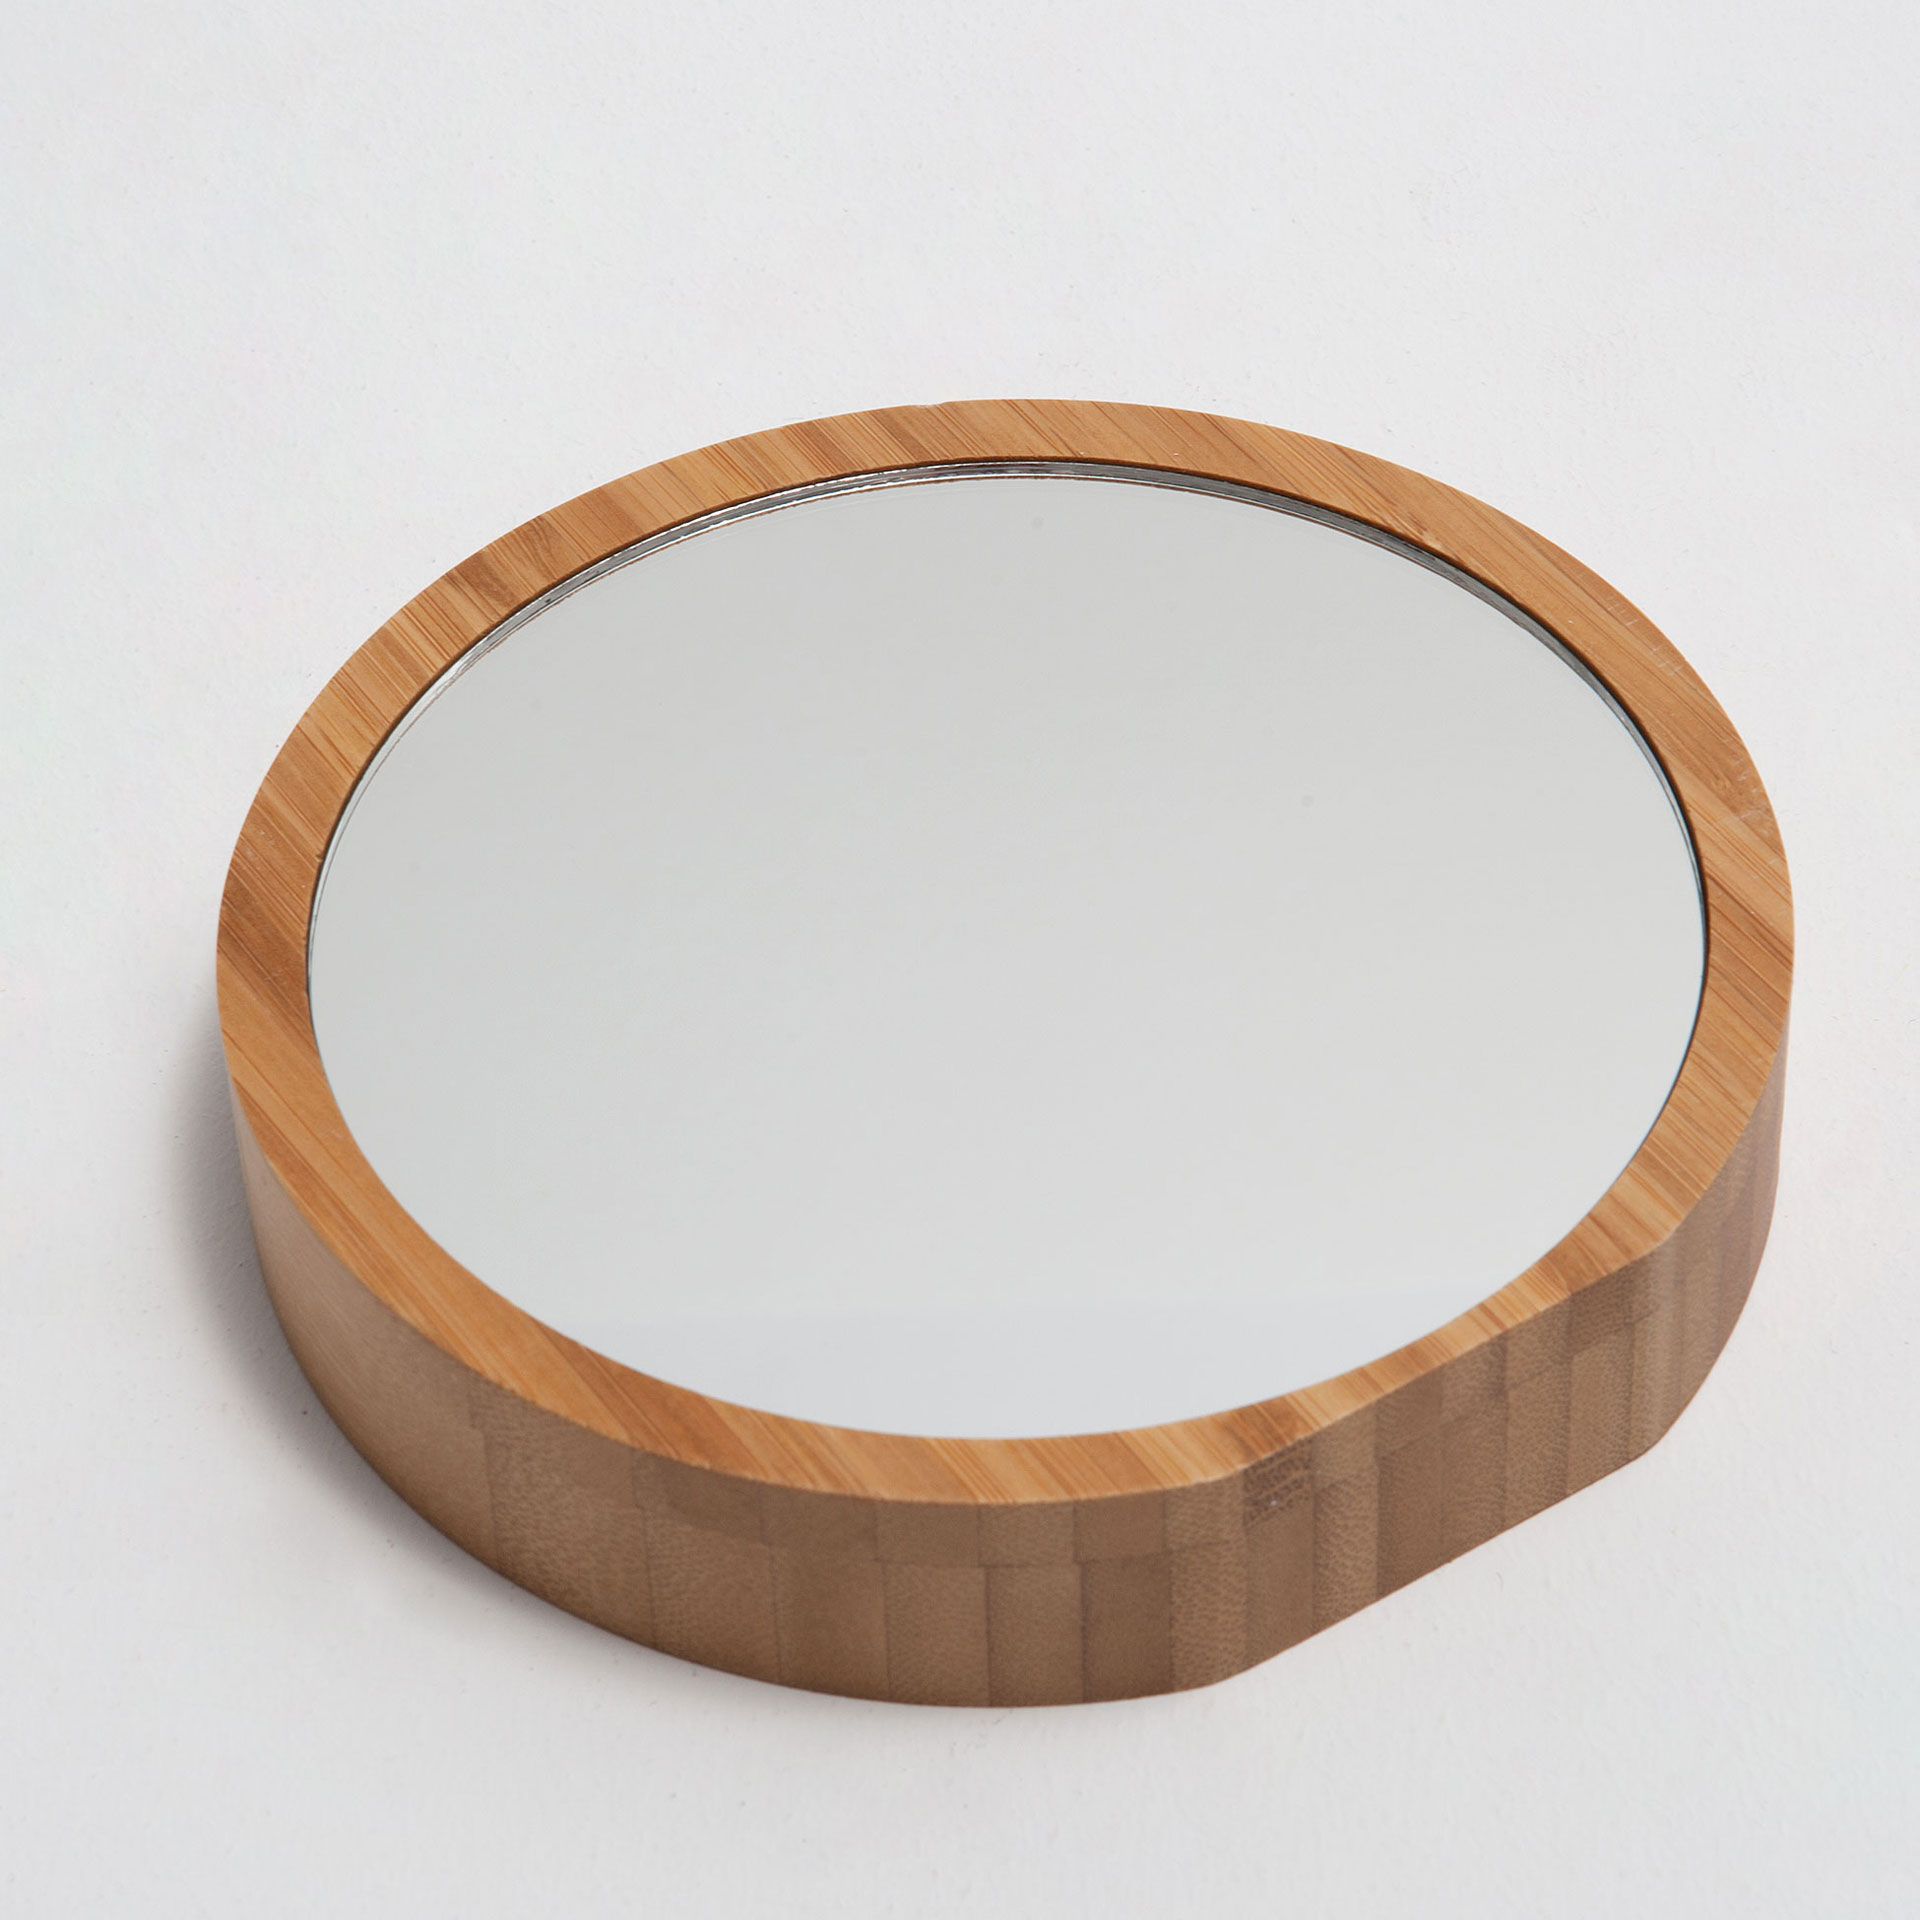 image 6 of the product round bamboo frame mirror - Bamboo Mirror